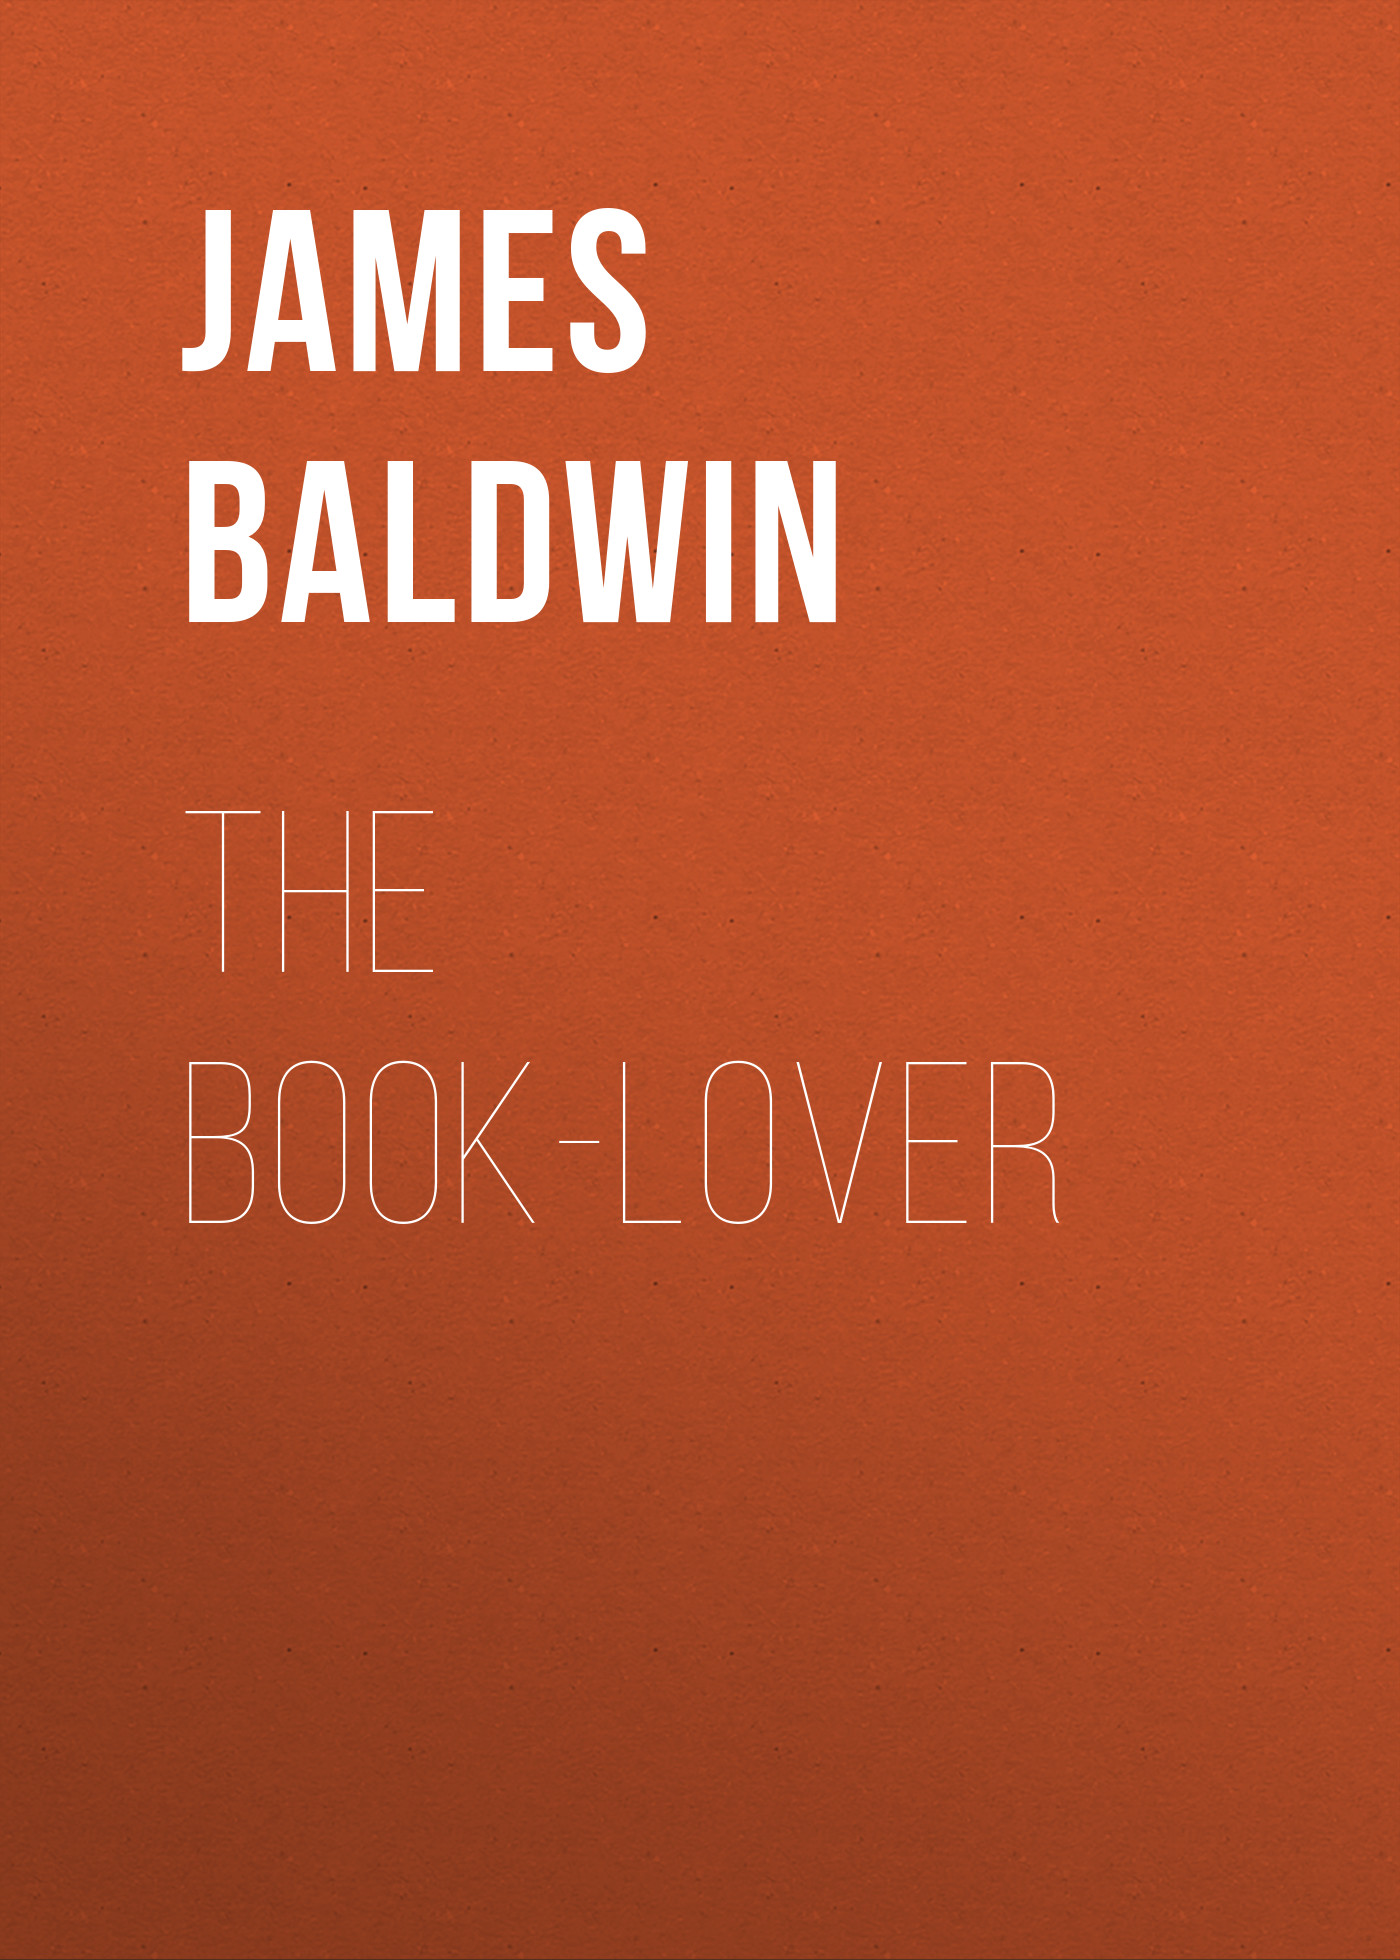 лучшая цена Baldwin James The Book-lover